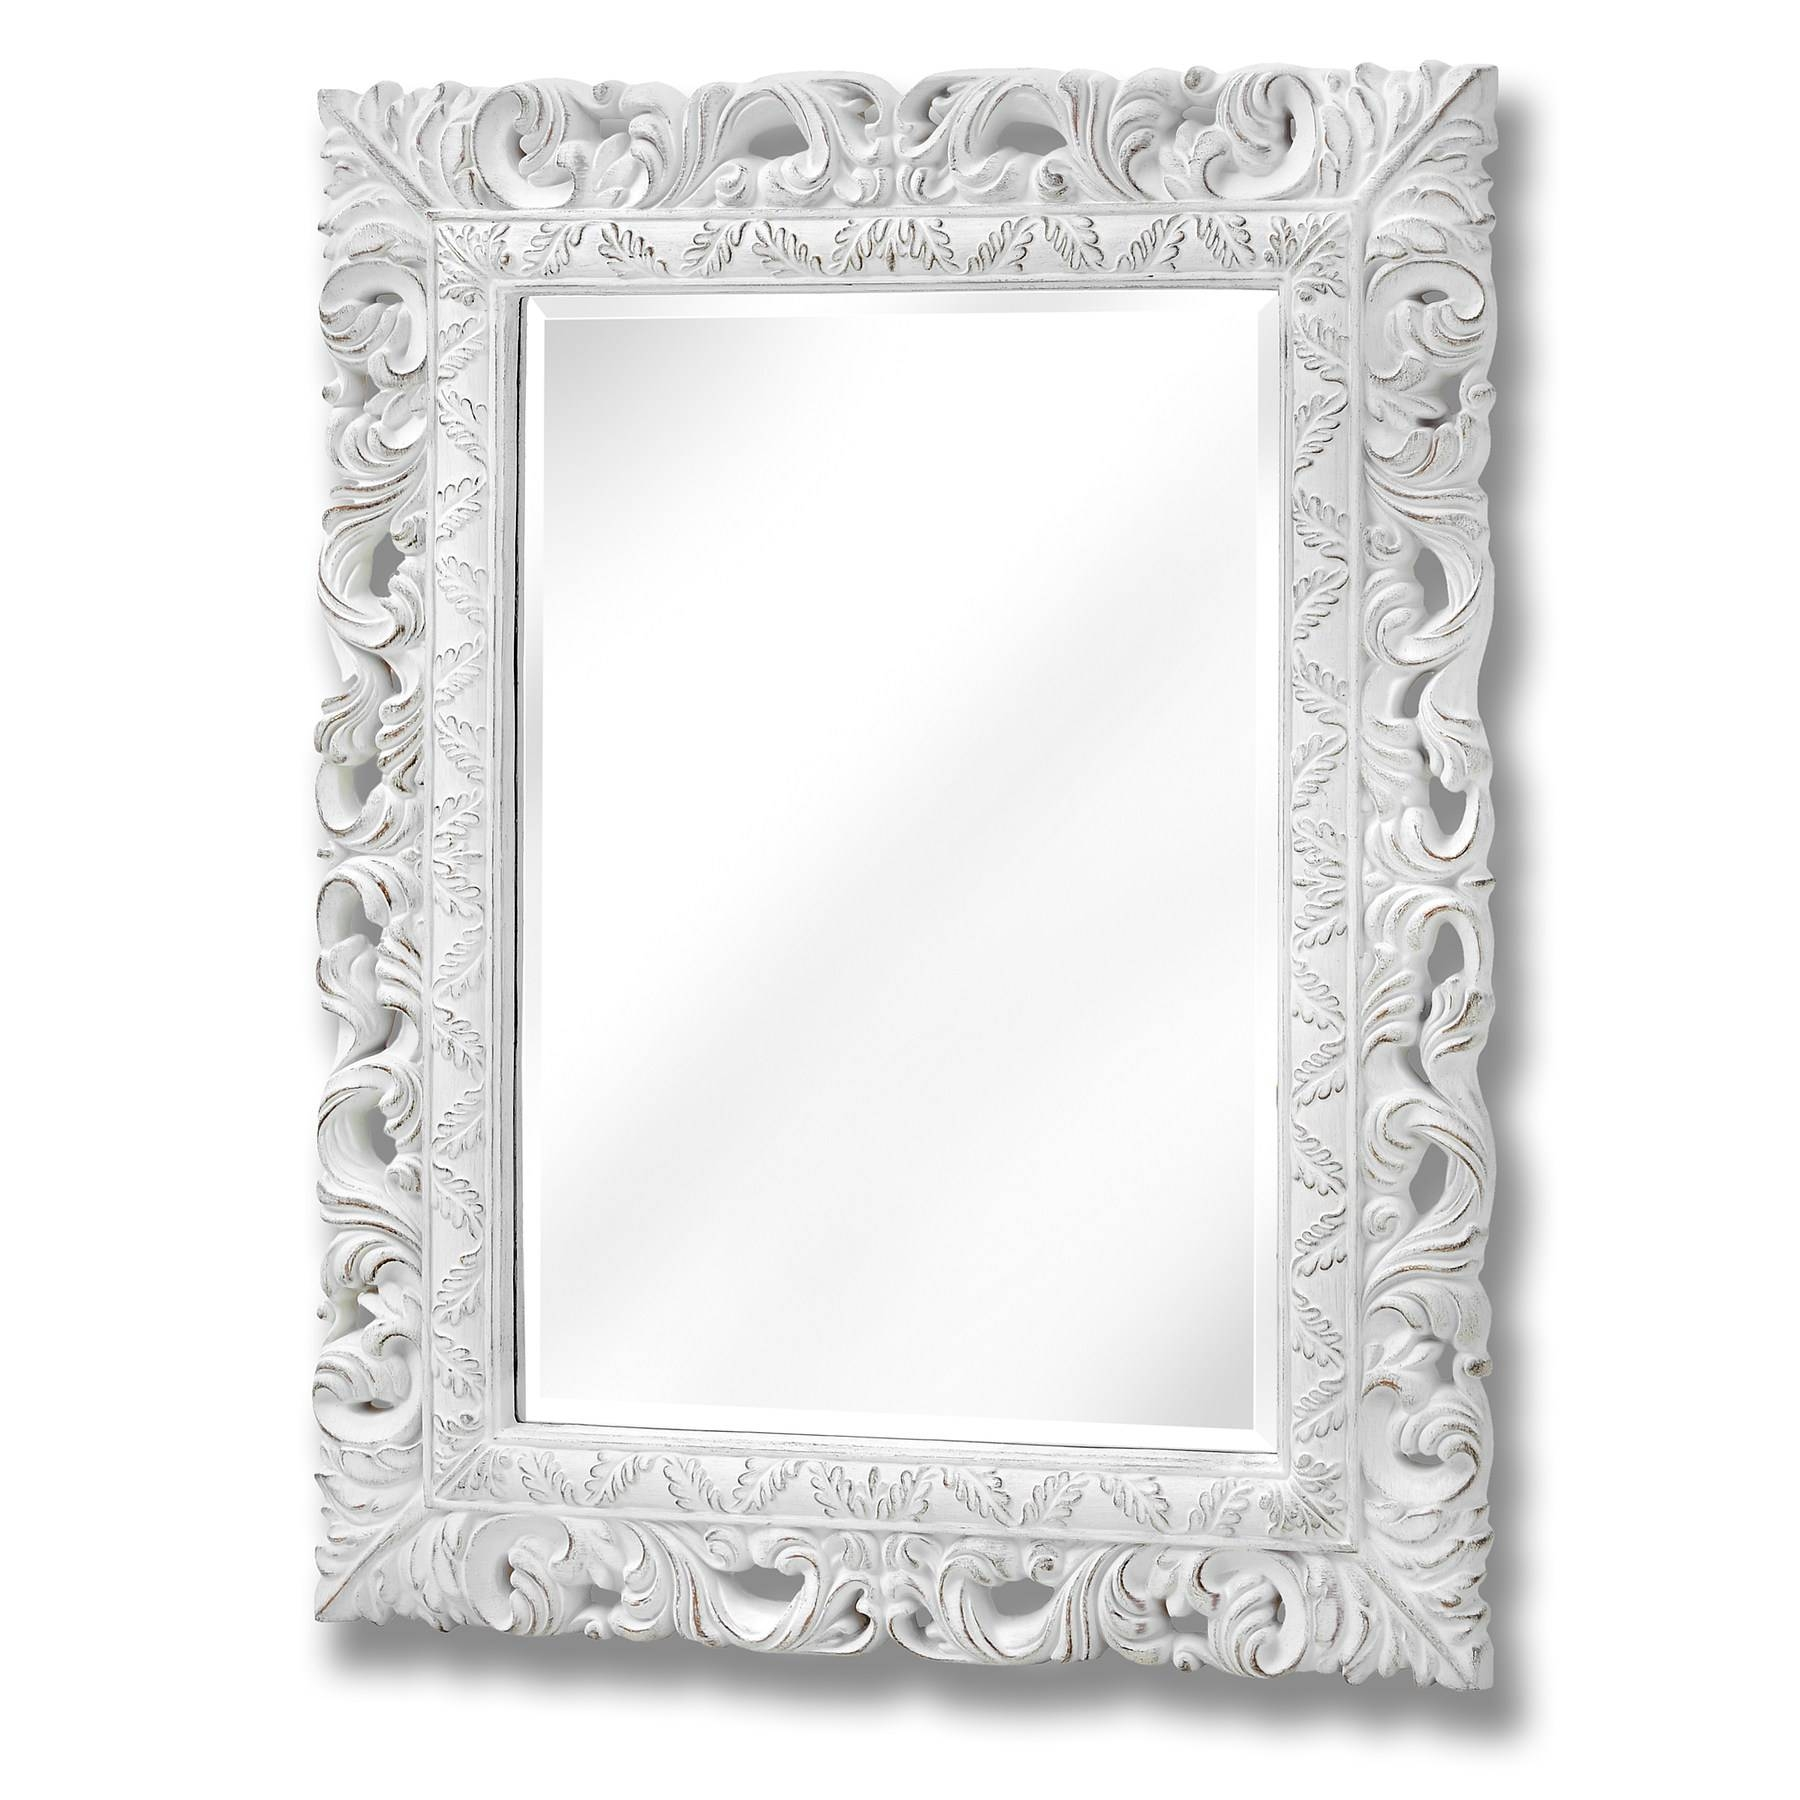 Antique White Ornate Leaf Wall Mirror | From Baytree Interiors for Ornate Black Mirrors (Image 2 of 15)